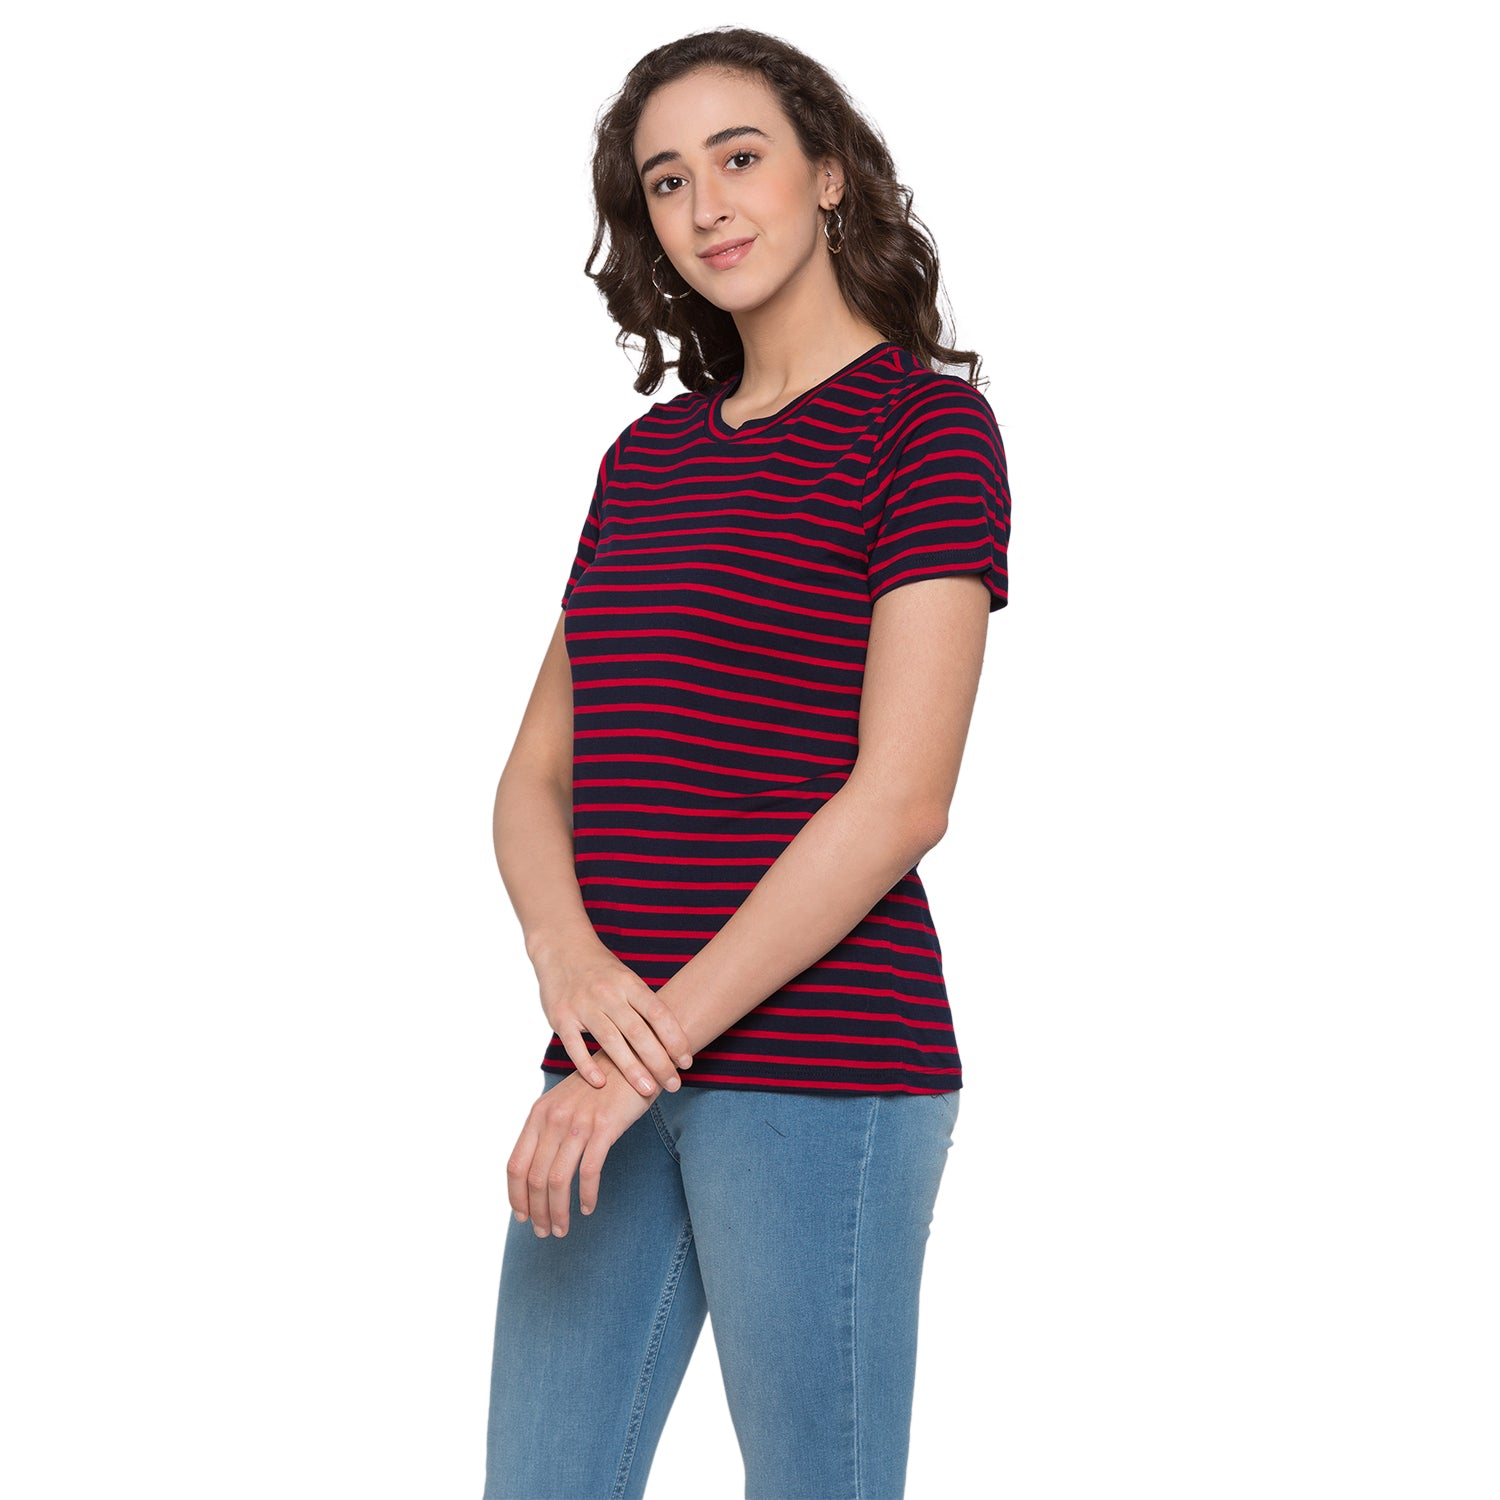 Globus Red & Navy Blue Striped Top2